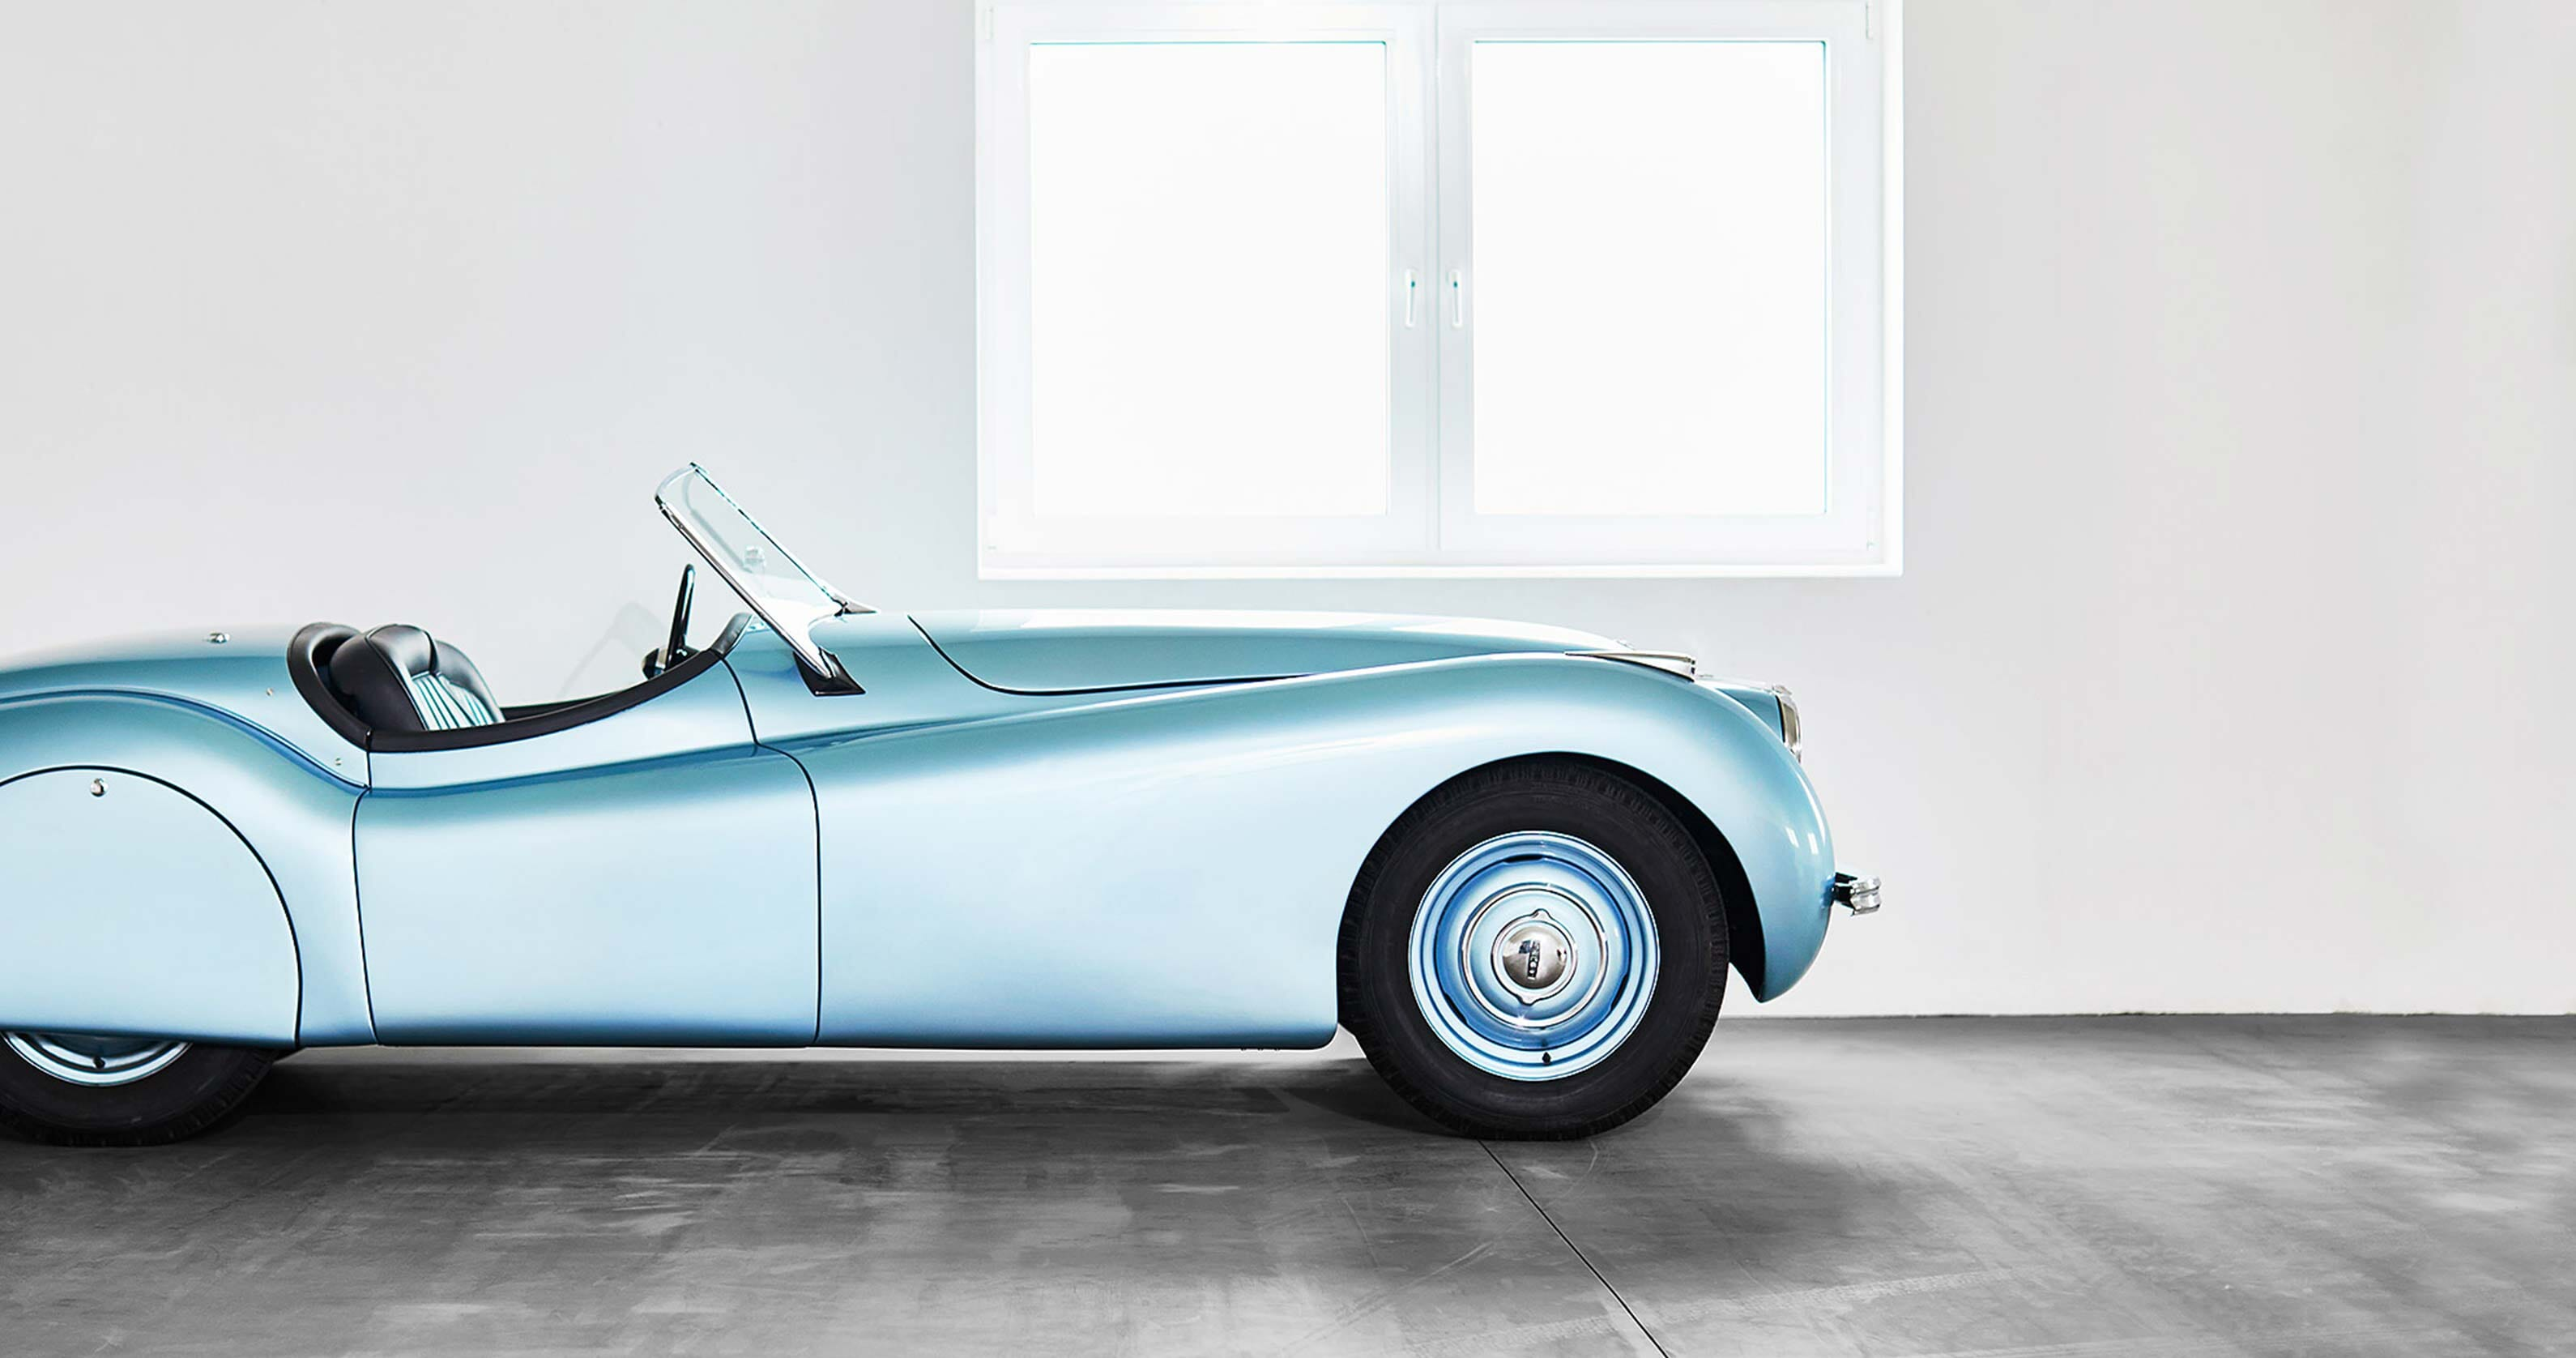 Is This 1950 Jaguar XK 120 Alloy Roadster The Classic Car Of Your Dreams?